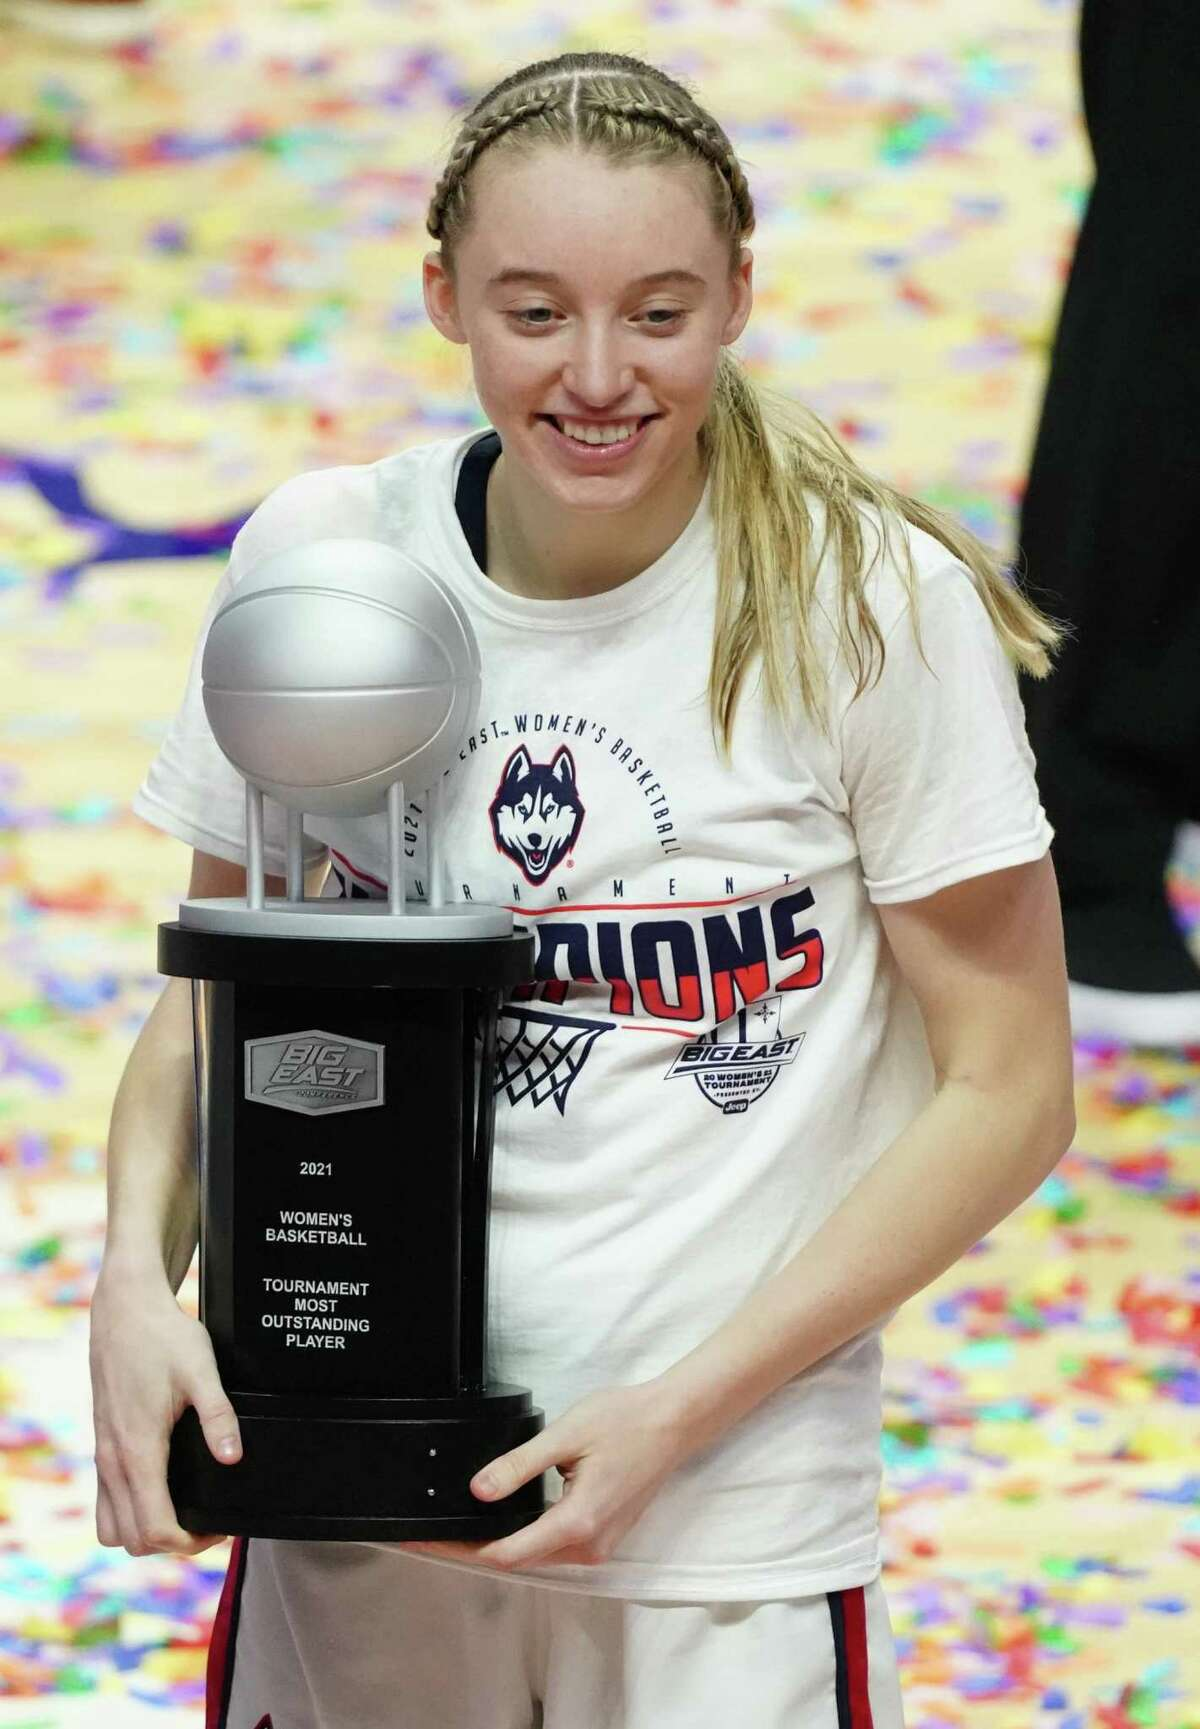 UConn's Paige Bueckers holds the Most Oustanding Player trophy after winning the Big East Tournament. Bueckers is recovering from ankle surgery and experts say the prognosis is good.